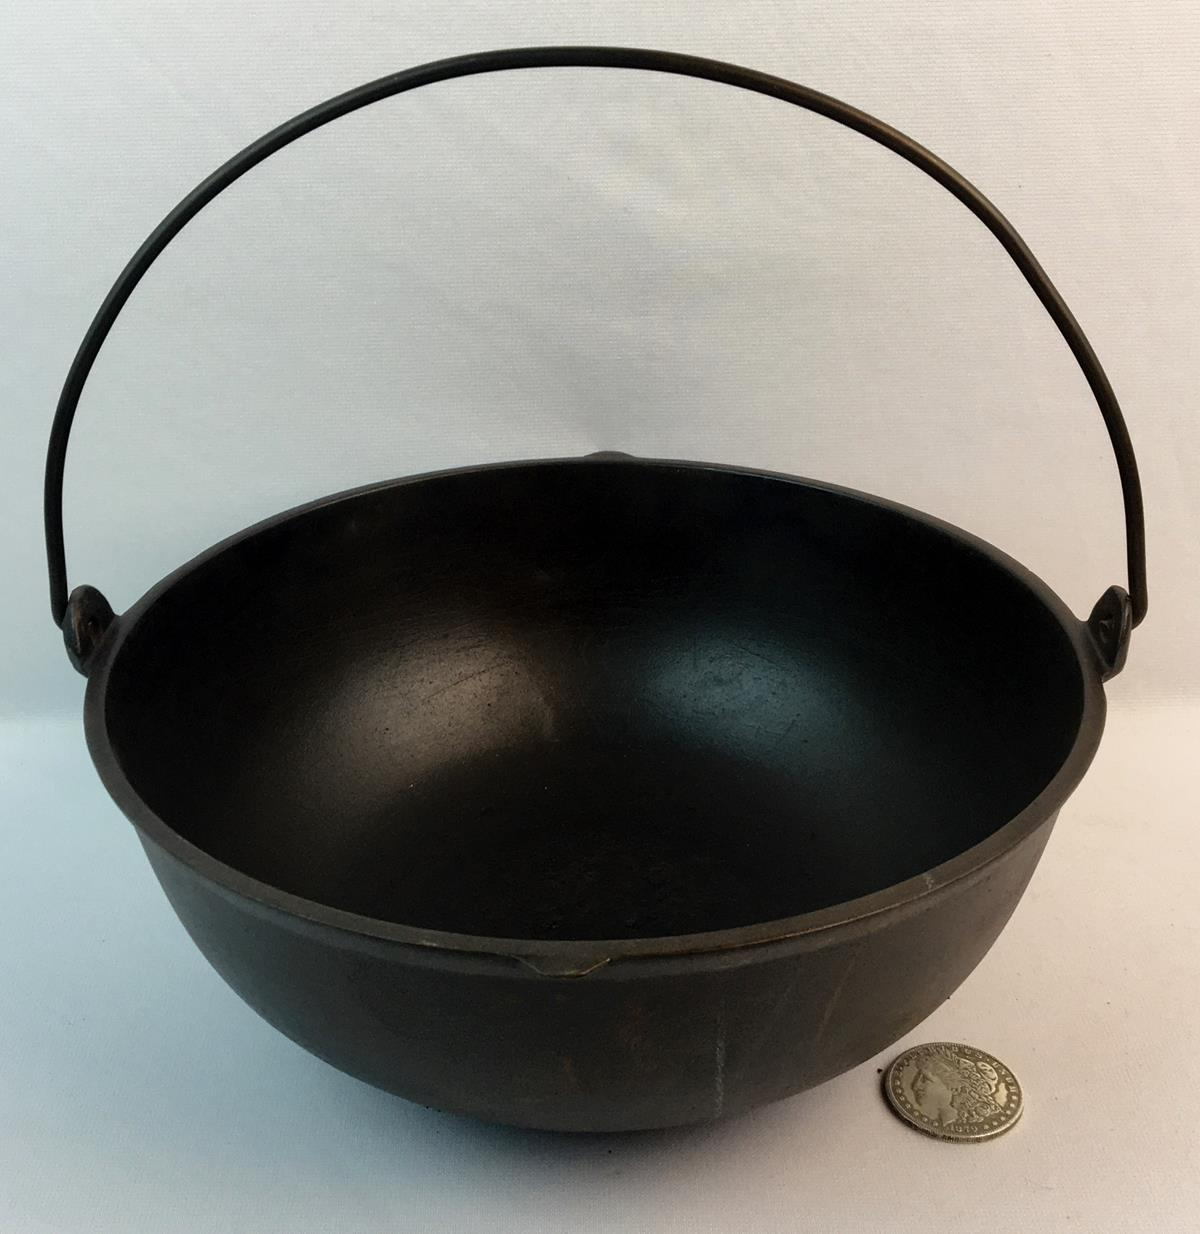 Antique 1800's Cast Iron Scotch Bowl w/ Raised 4 and Bail Handle